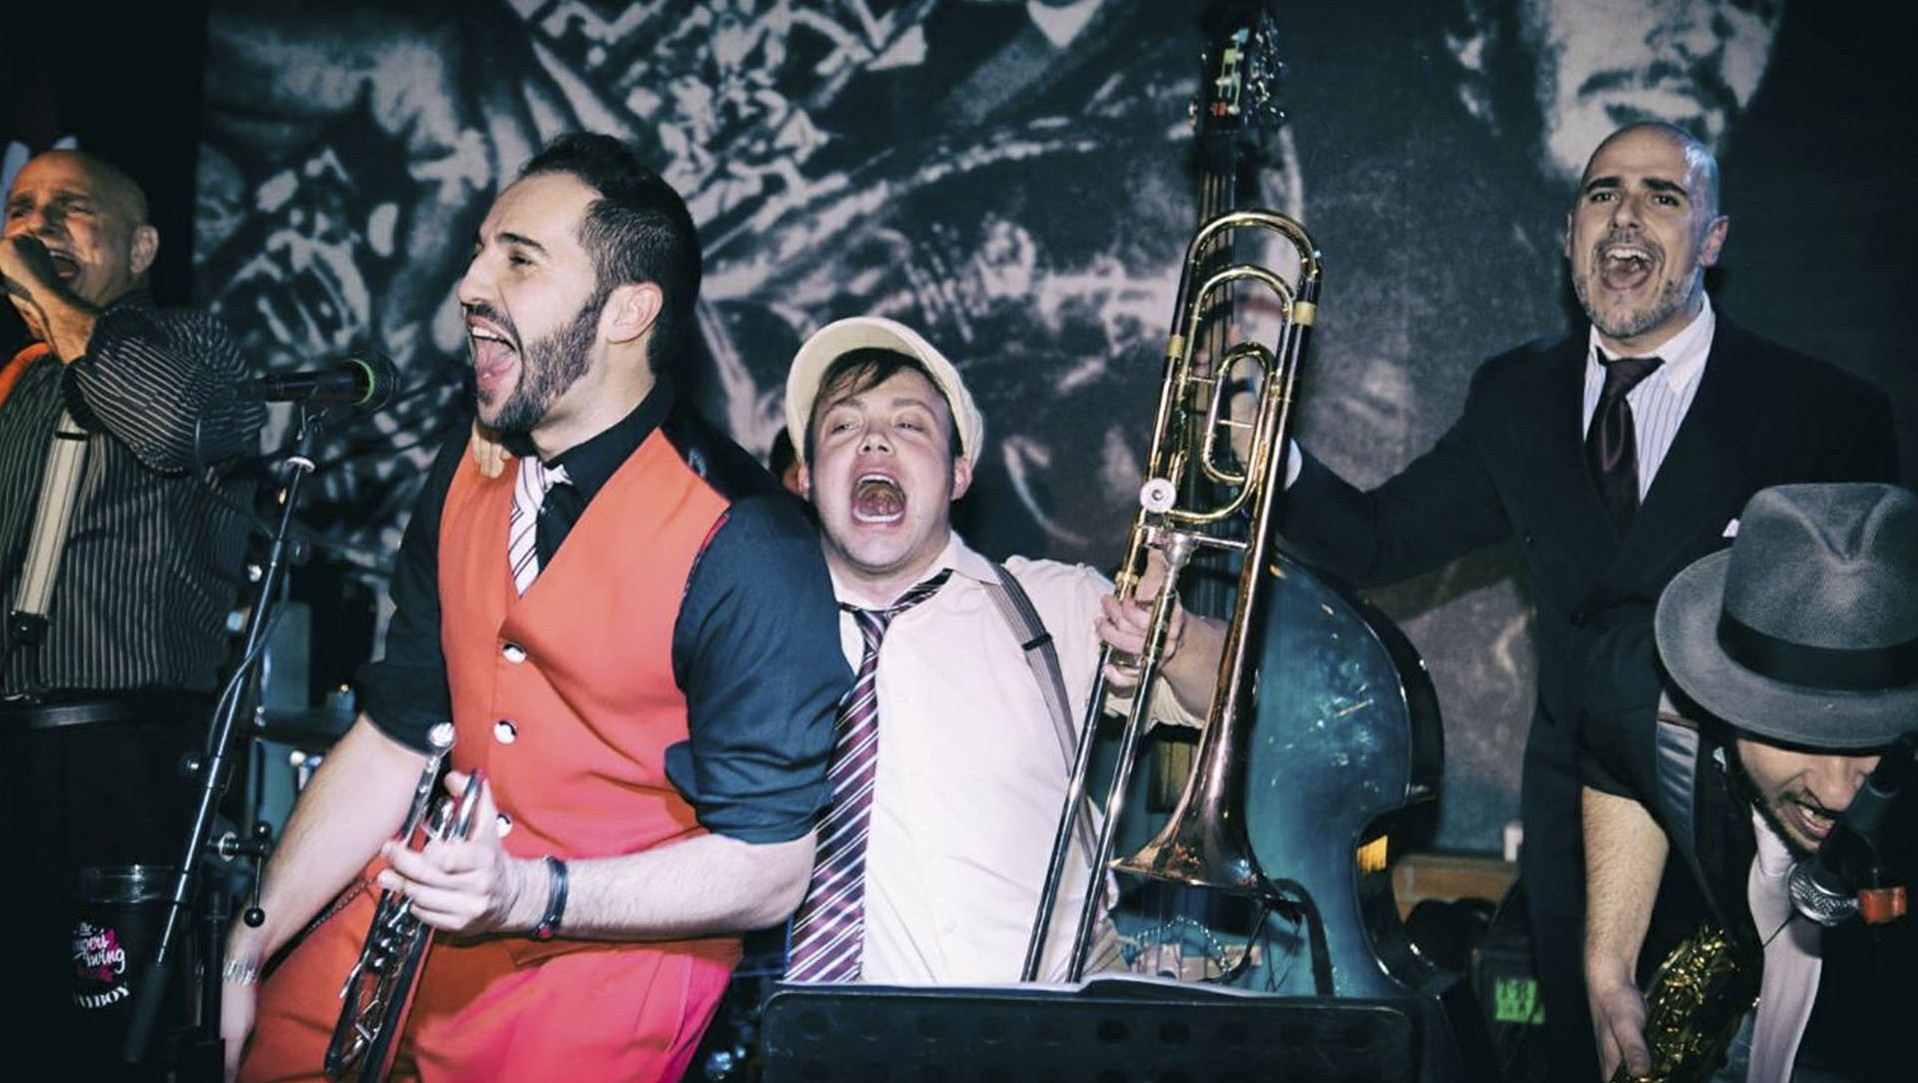 The troupers Swing Band1.jpg